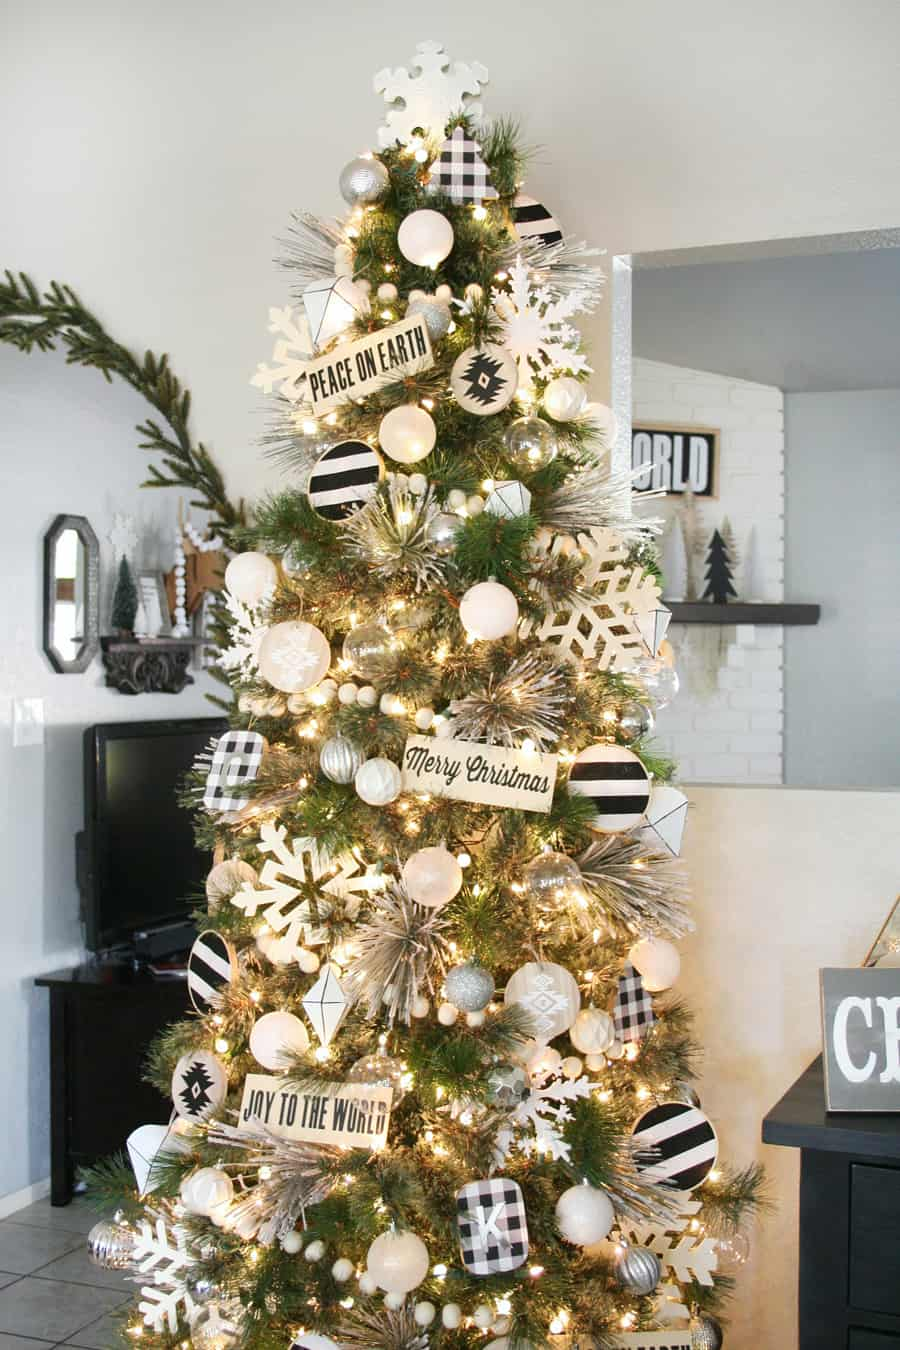 Decorating your Christmas tree with black and white Christmas decor is a great way to bring a unique touch to your Christmas decorating this year